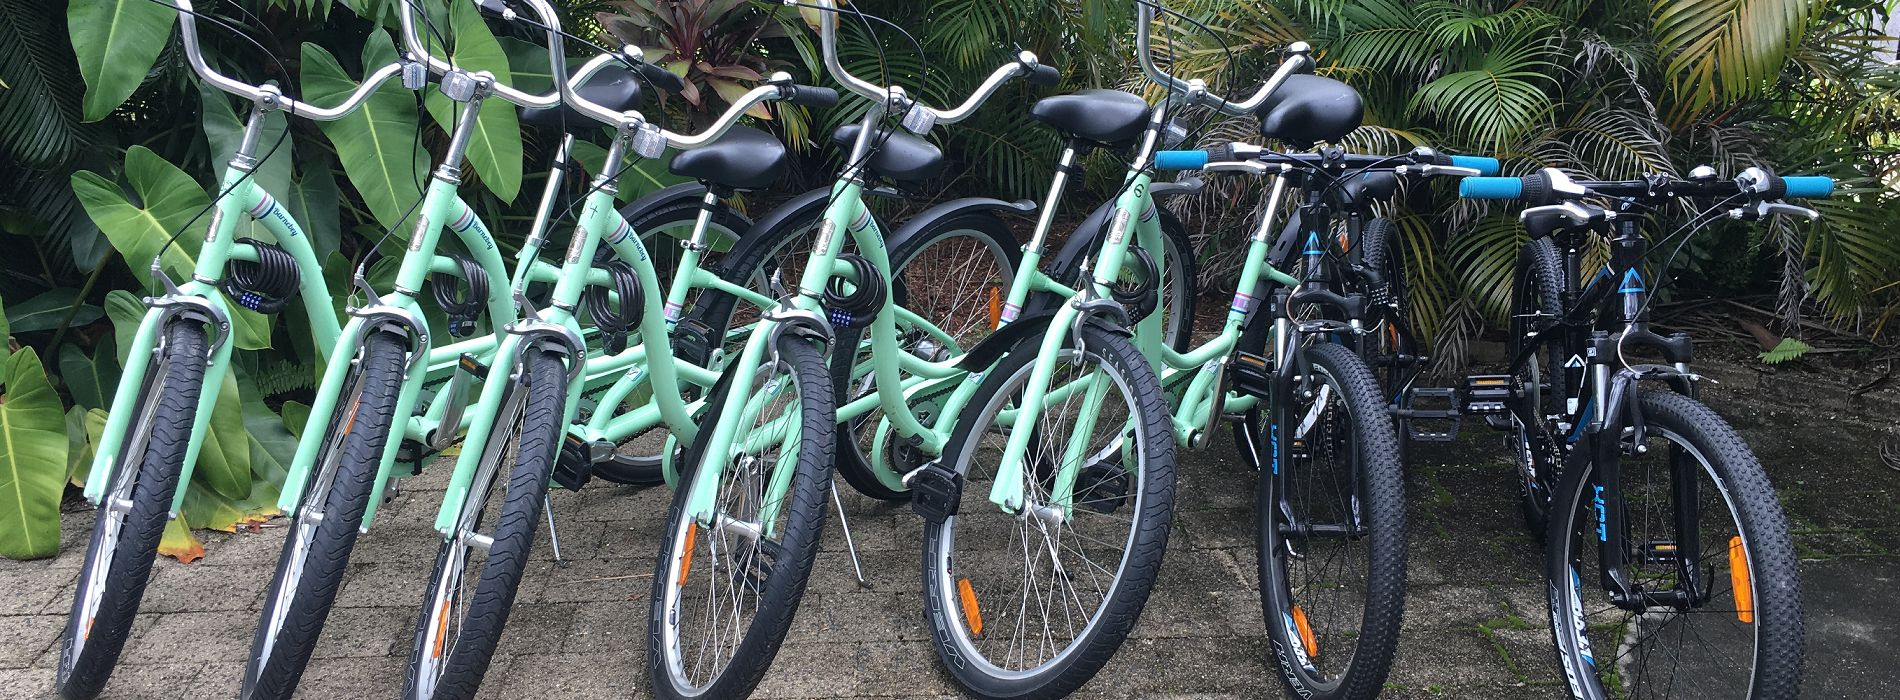 Cairns Holiday Apartments Oasis Inn Cairns Bike Hire